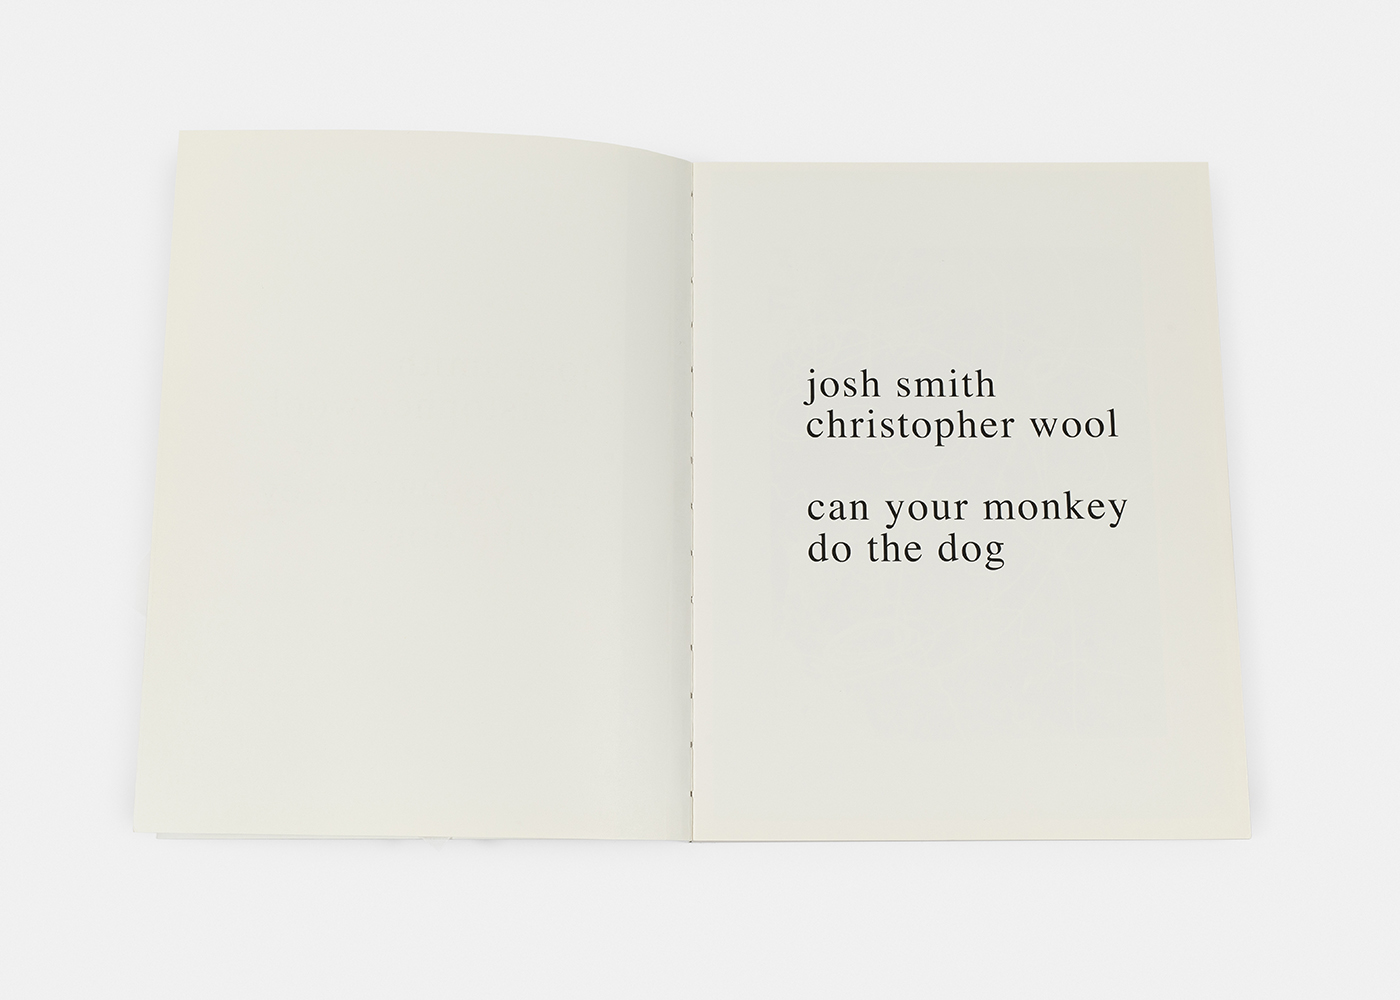 Josh Smith and Christopher Wool - can your monkey do the dog, 2007 -